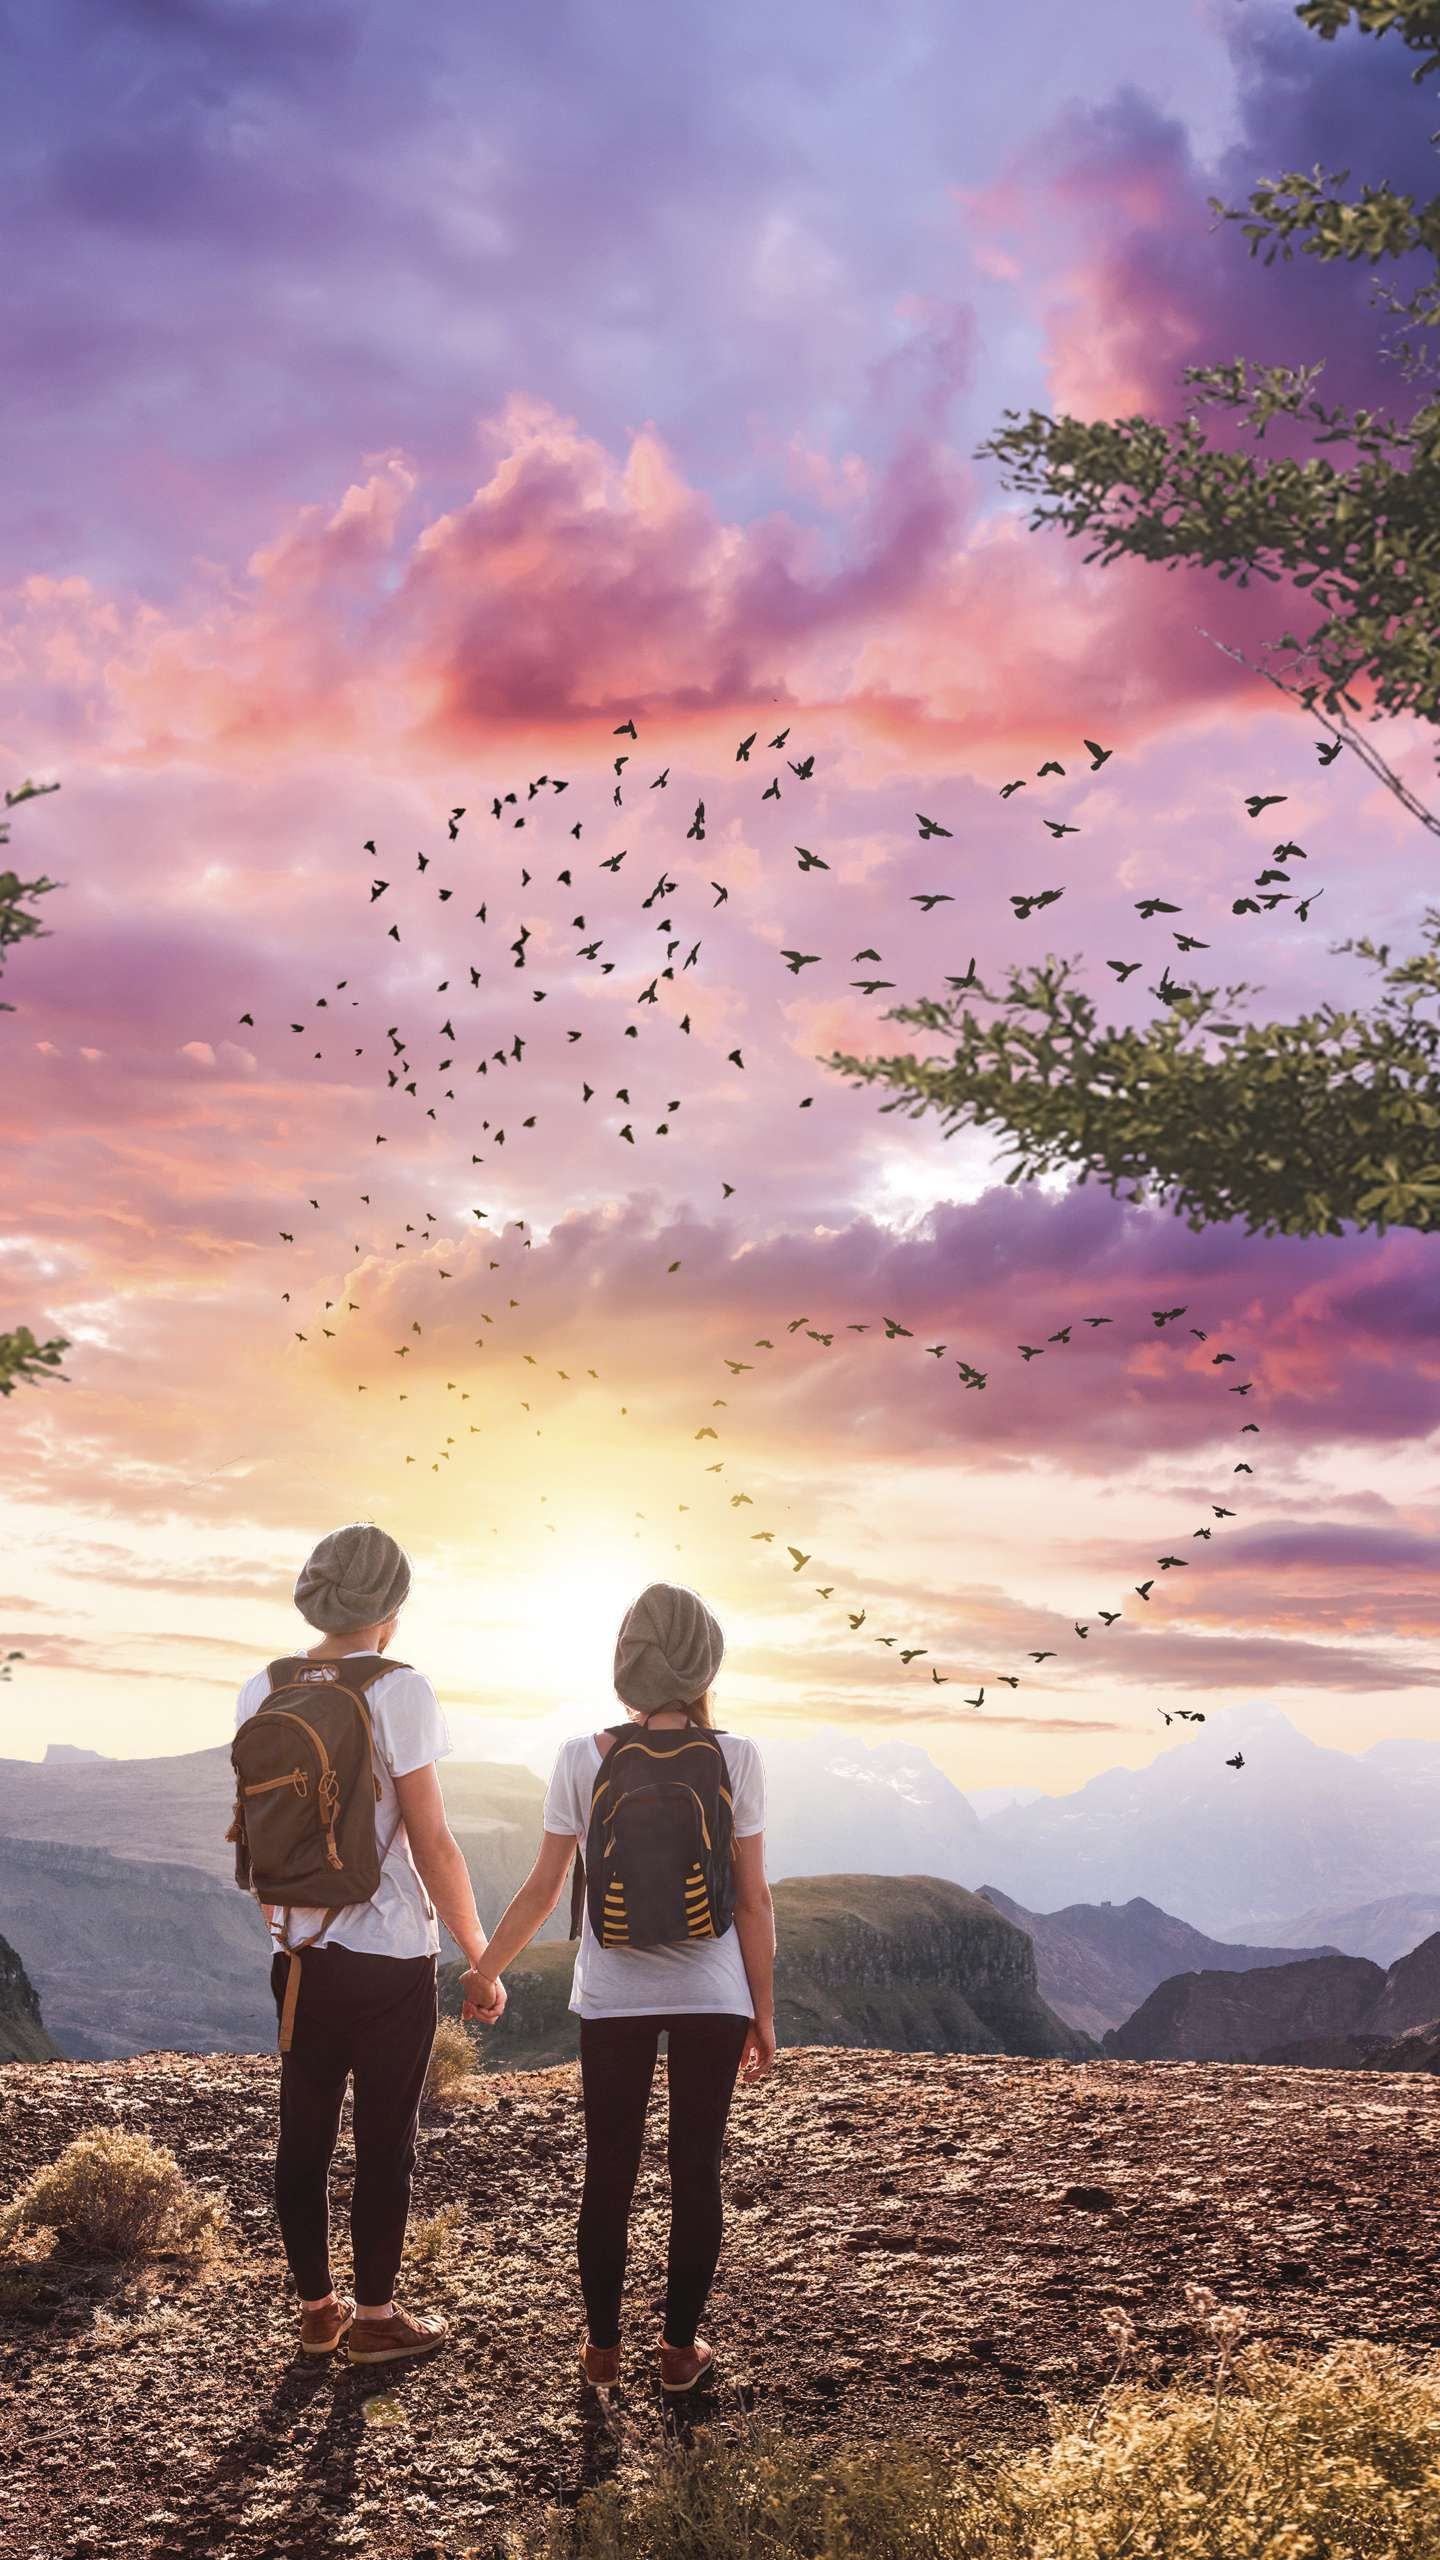 Couple In Paradise Iphone Wallpaper In 2020 Wallpaper Iphone Love Couple Wallpaper Love Wallpapers Romantic